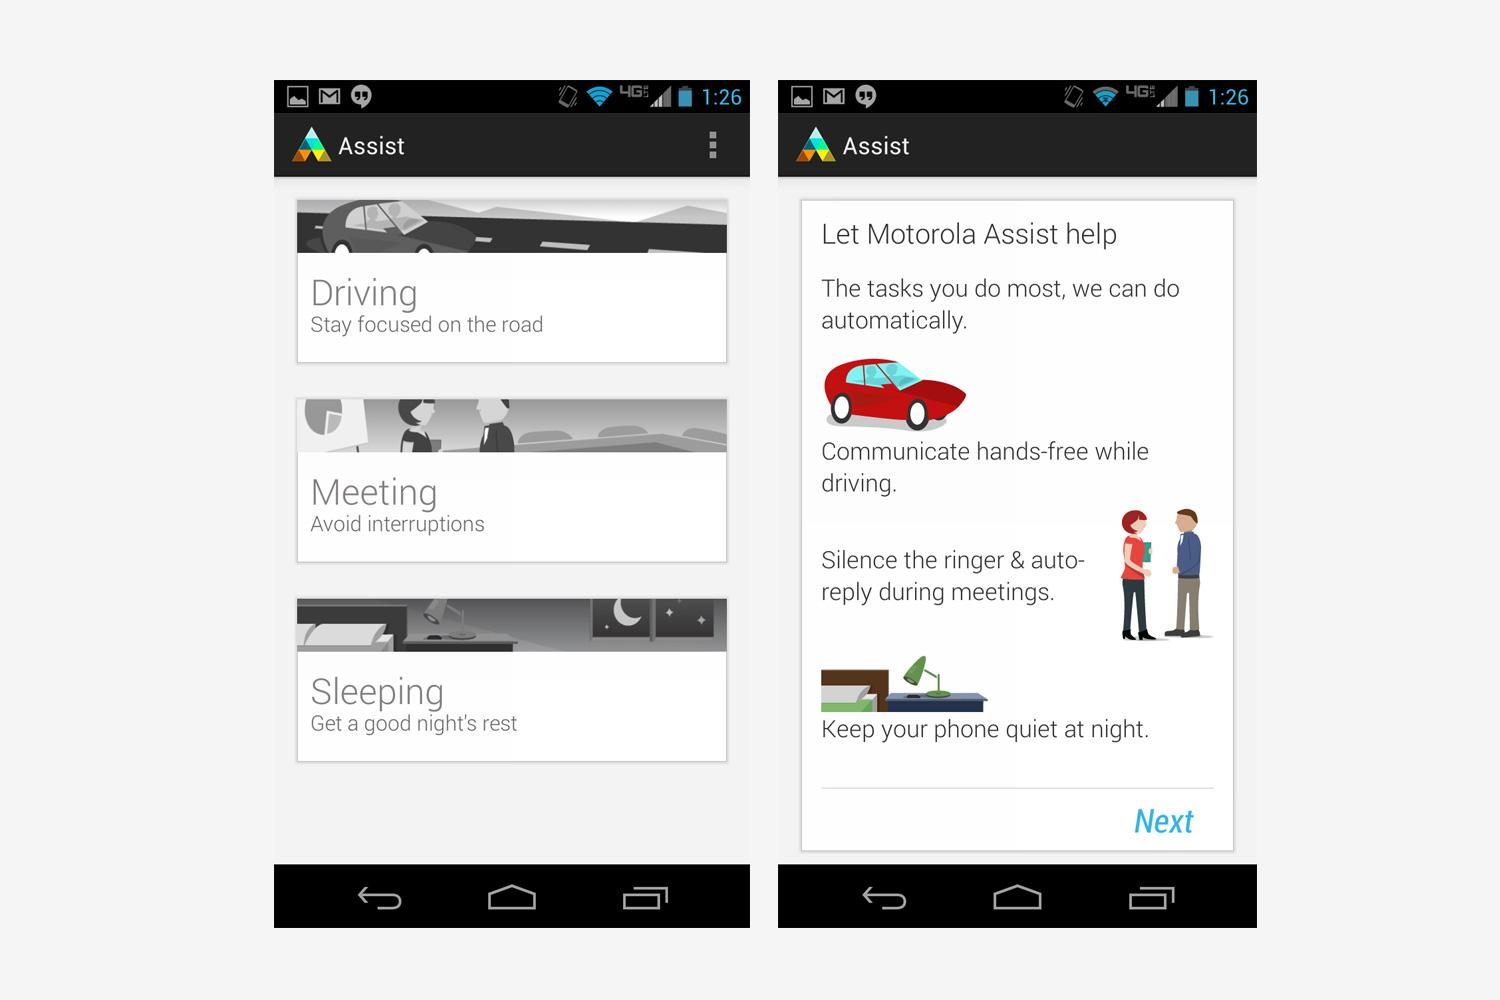 motorola-moto-x-screenshot-assist-3.jpg